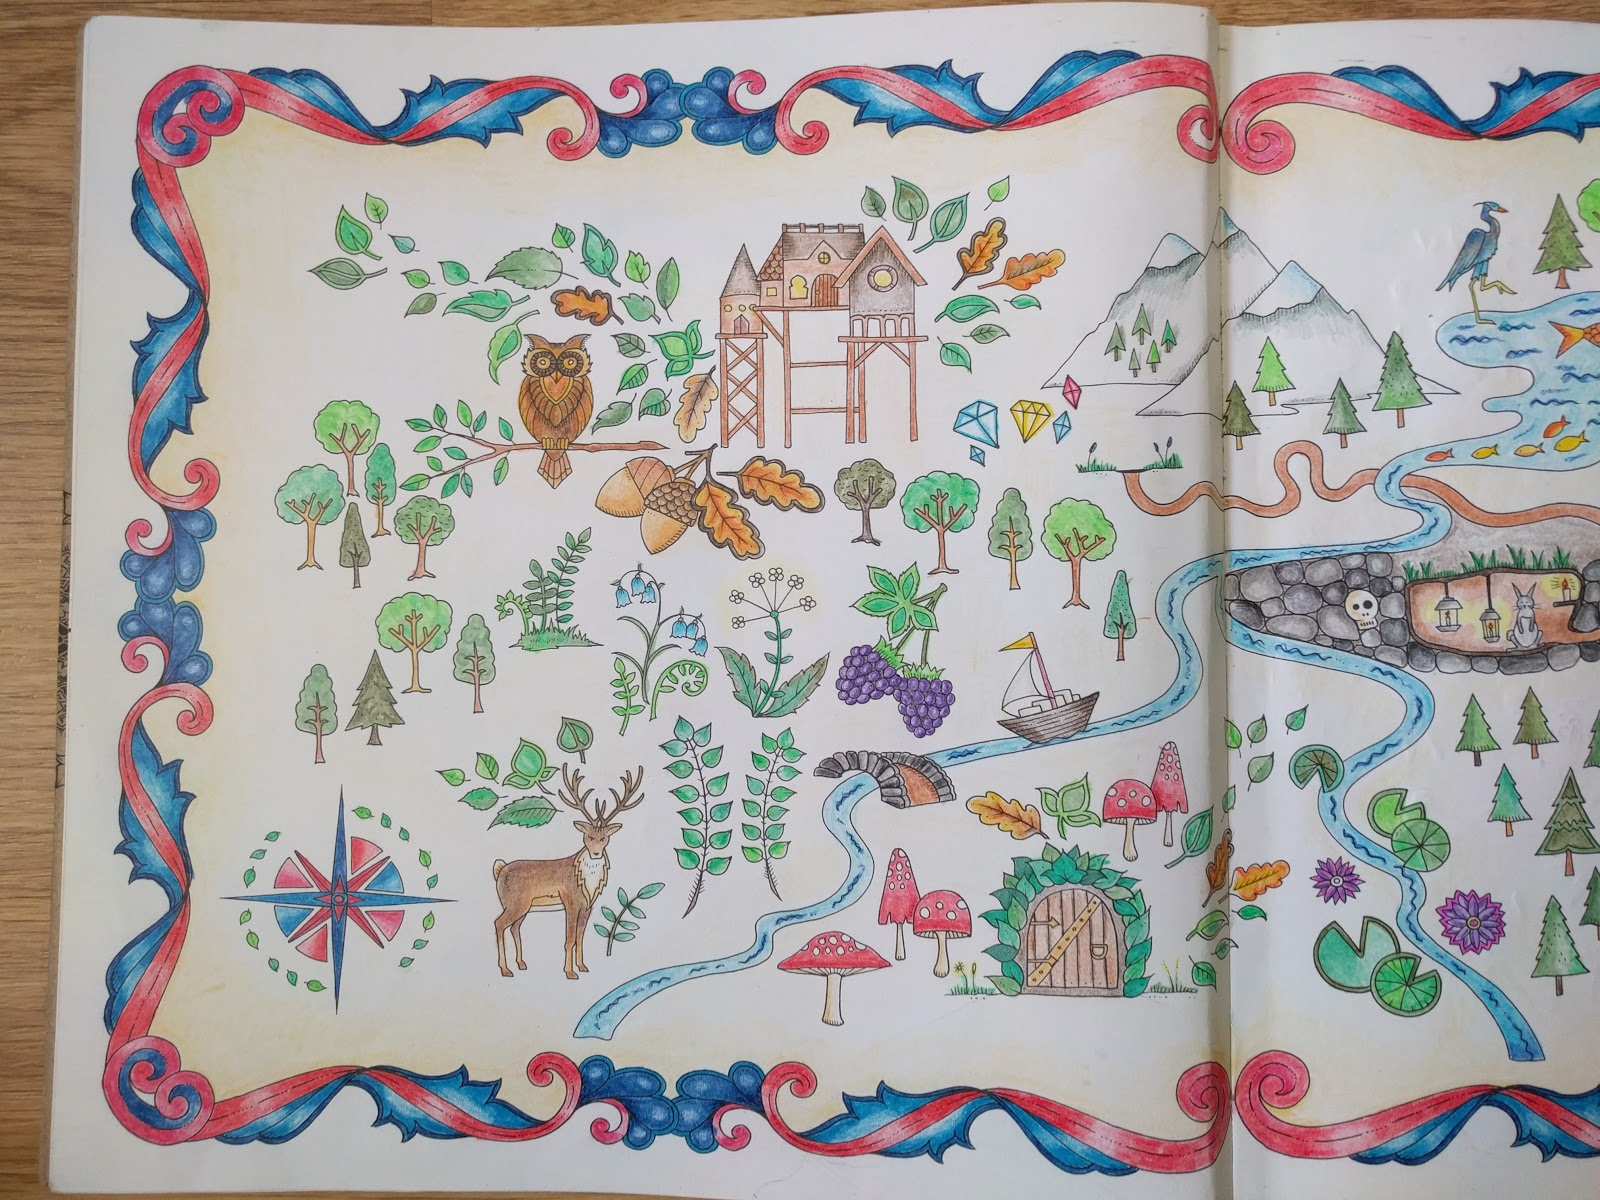 70 Enchanted Forest Coloring Book Map Take A Peek